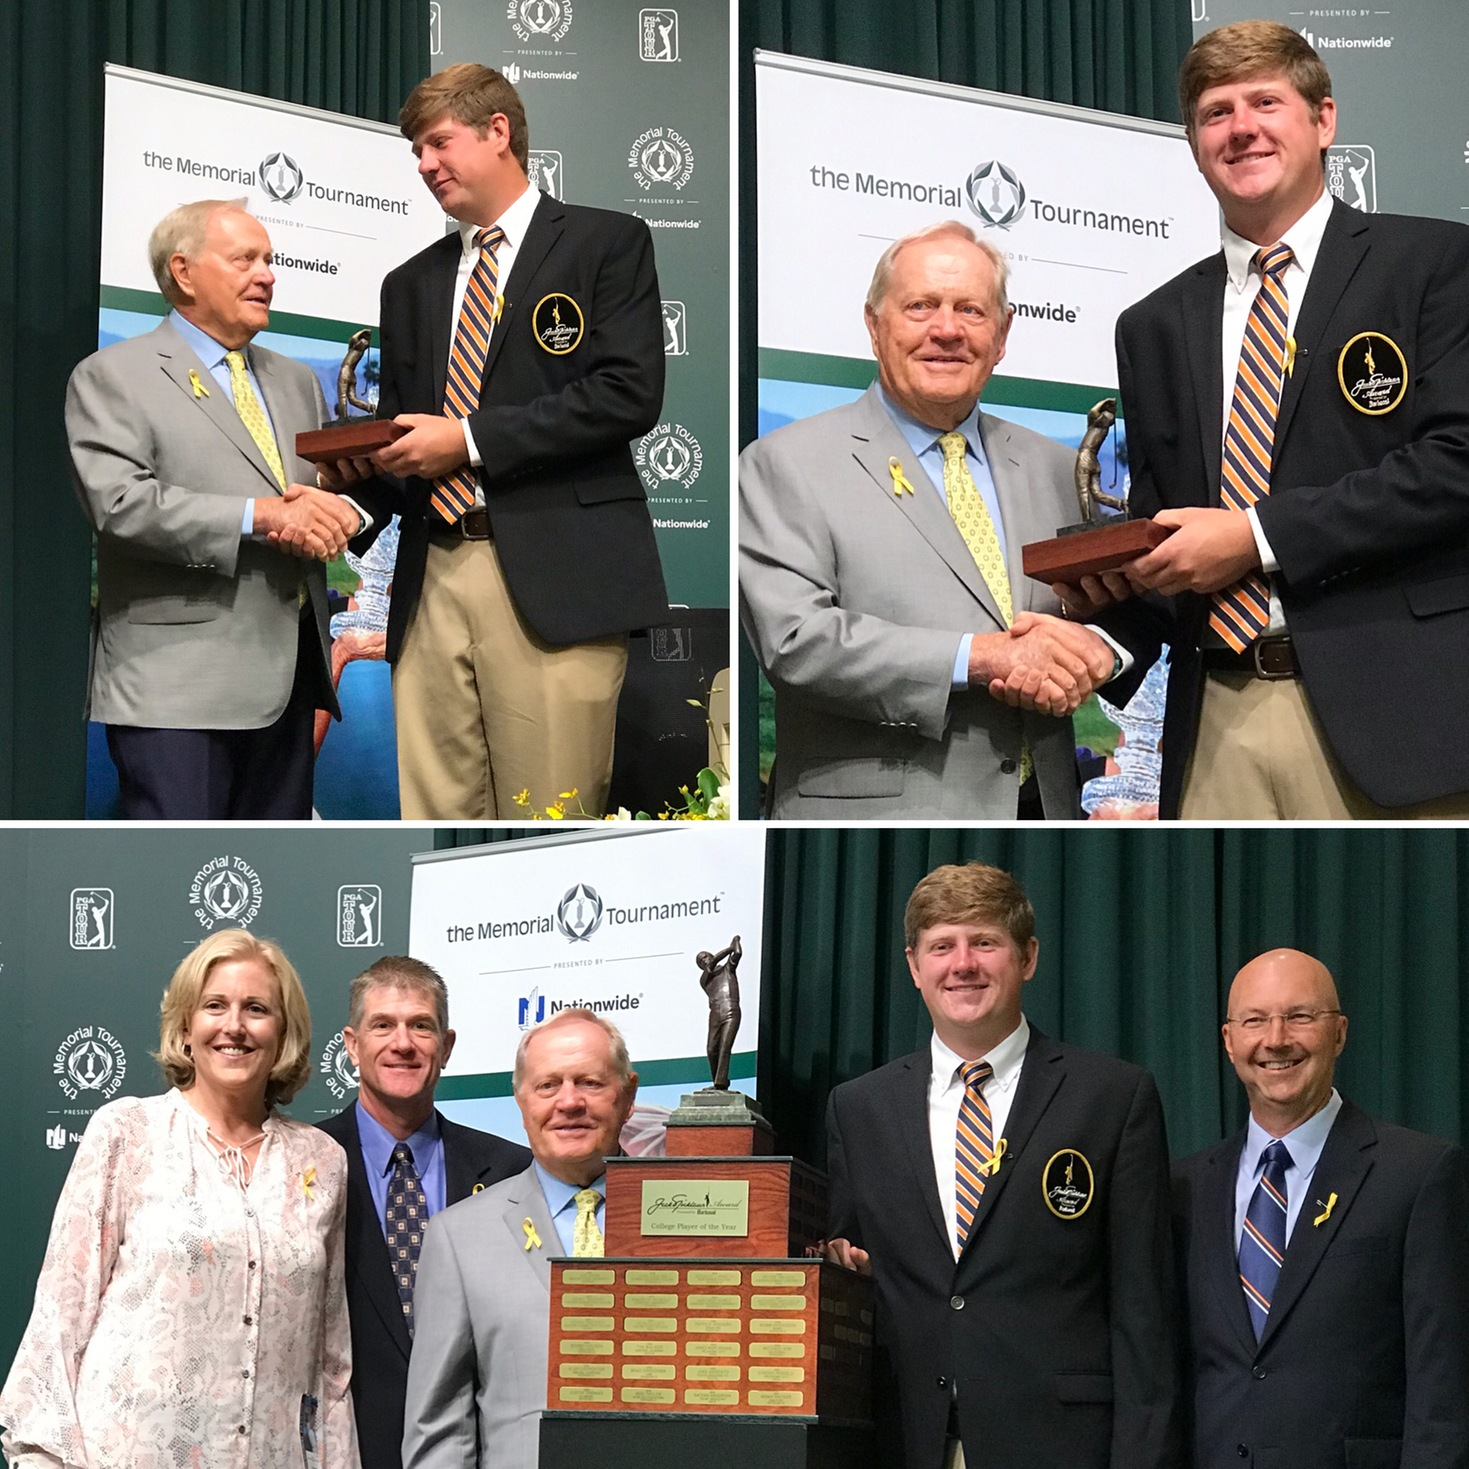 Golfer Josh Gibson accepts his national player of the year award from Jack Nicklaus